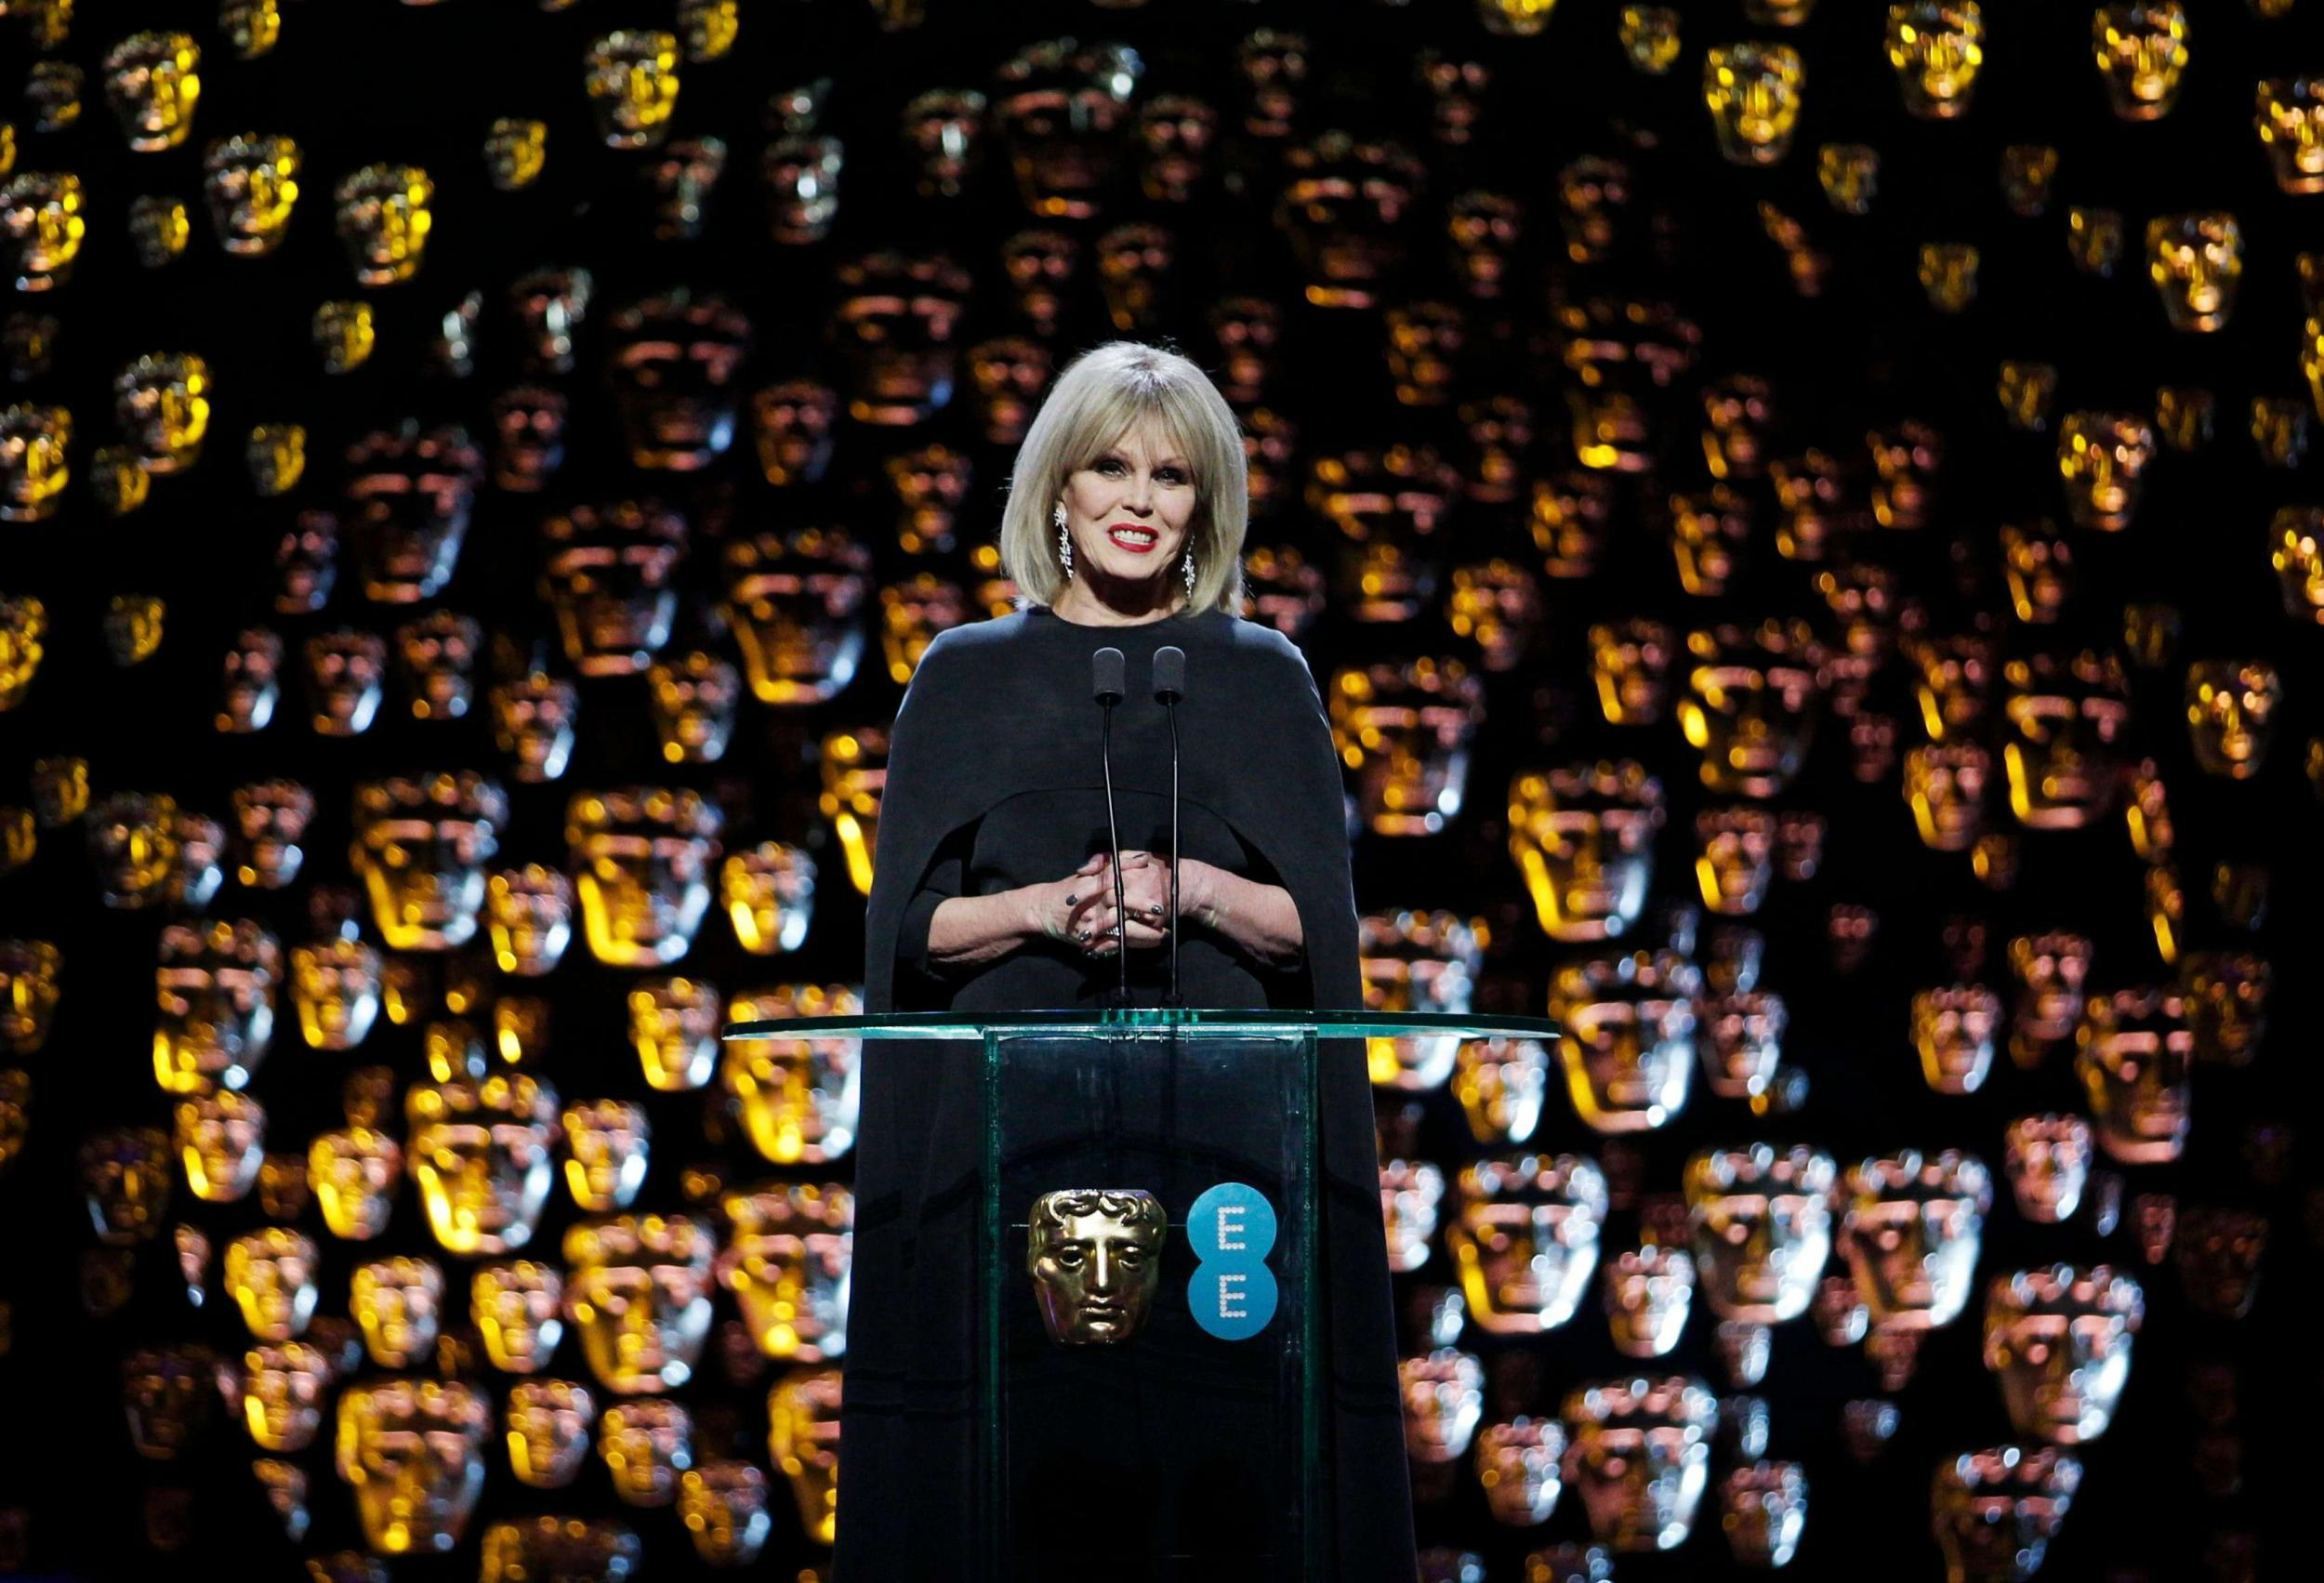 Serve On ambassador Joanna Lumley hosting the recent BAFTA awards.